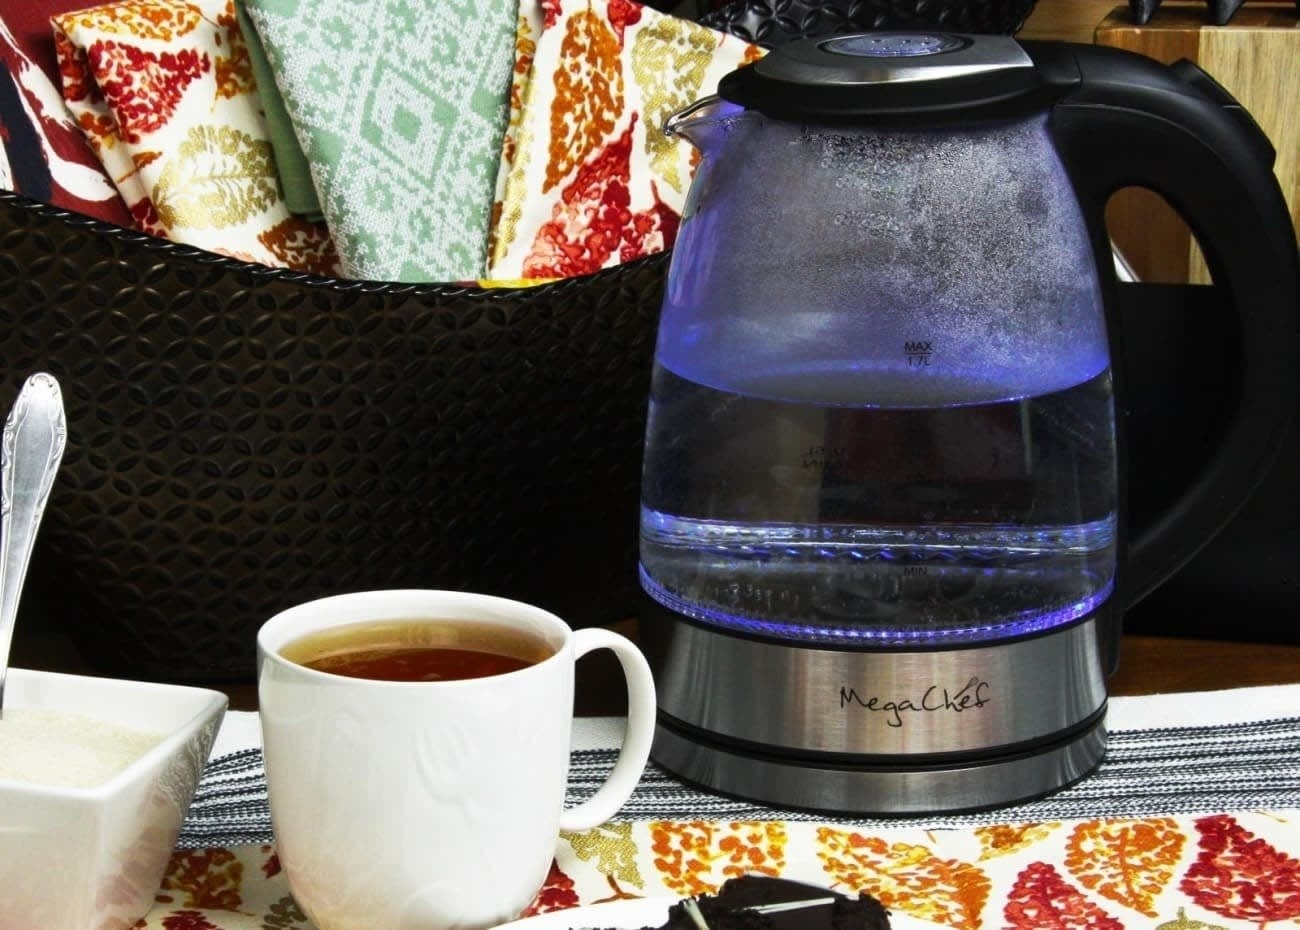 The kettle's capacity is 1.8 L. It's made with a high-borosilicate glass body, which is durable and stain-resistant. It has an auto-turnoff feature, a bright LED light, an automatic one-button cover starter, cord-free serving, a drip-free spout, and automatically turns off when water is boiling.Get it from Walmart or Jet for $19.99.